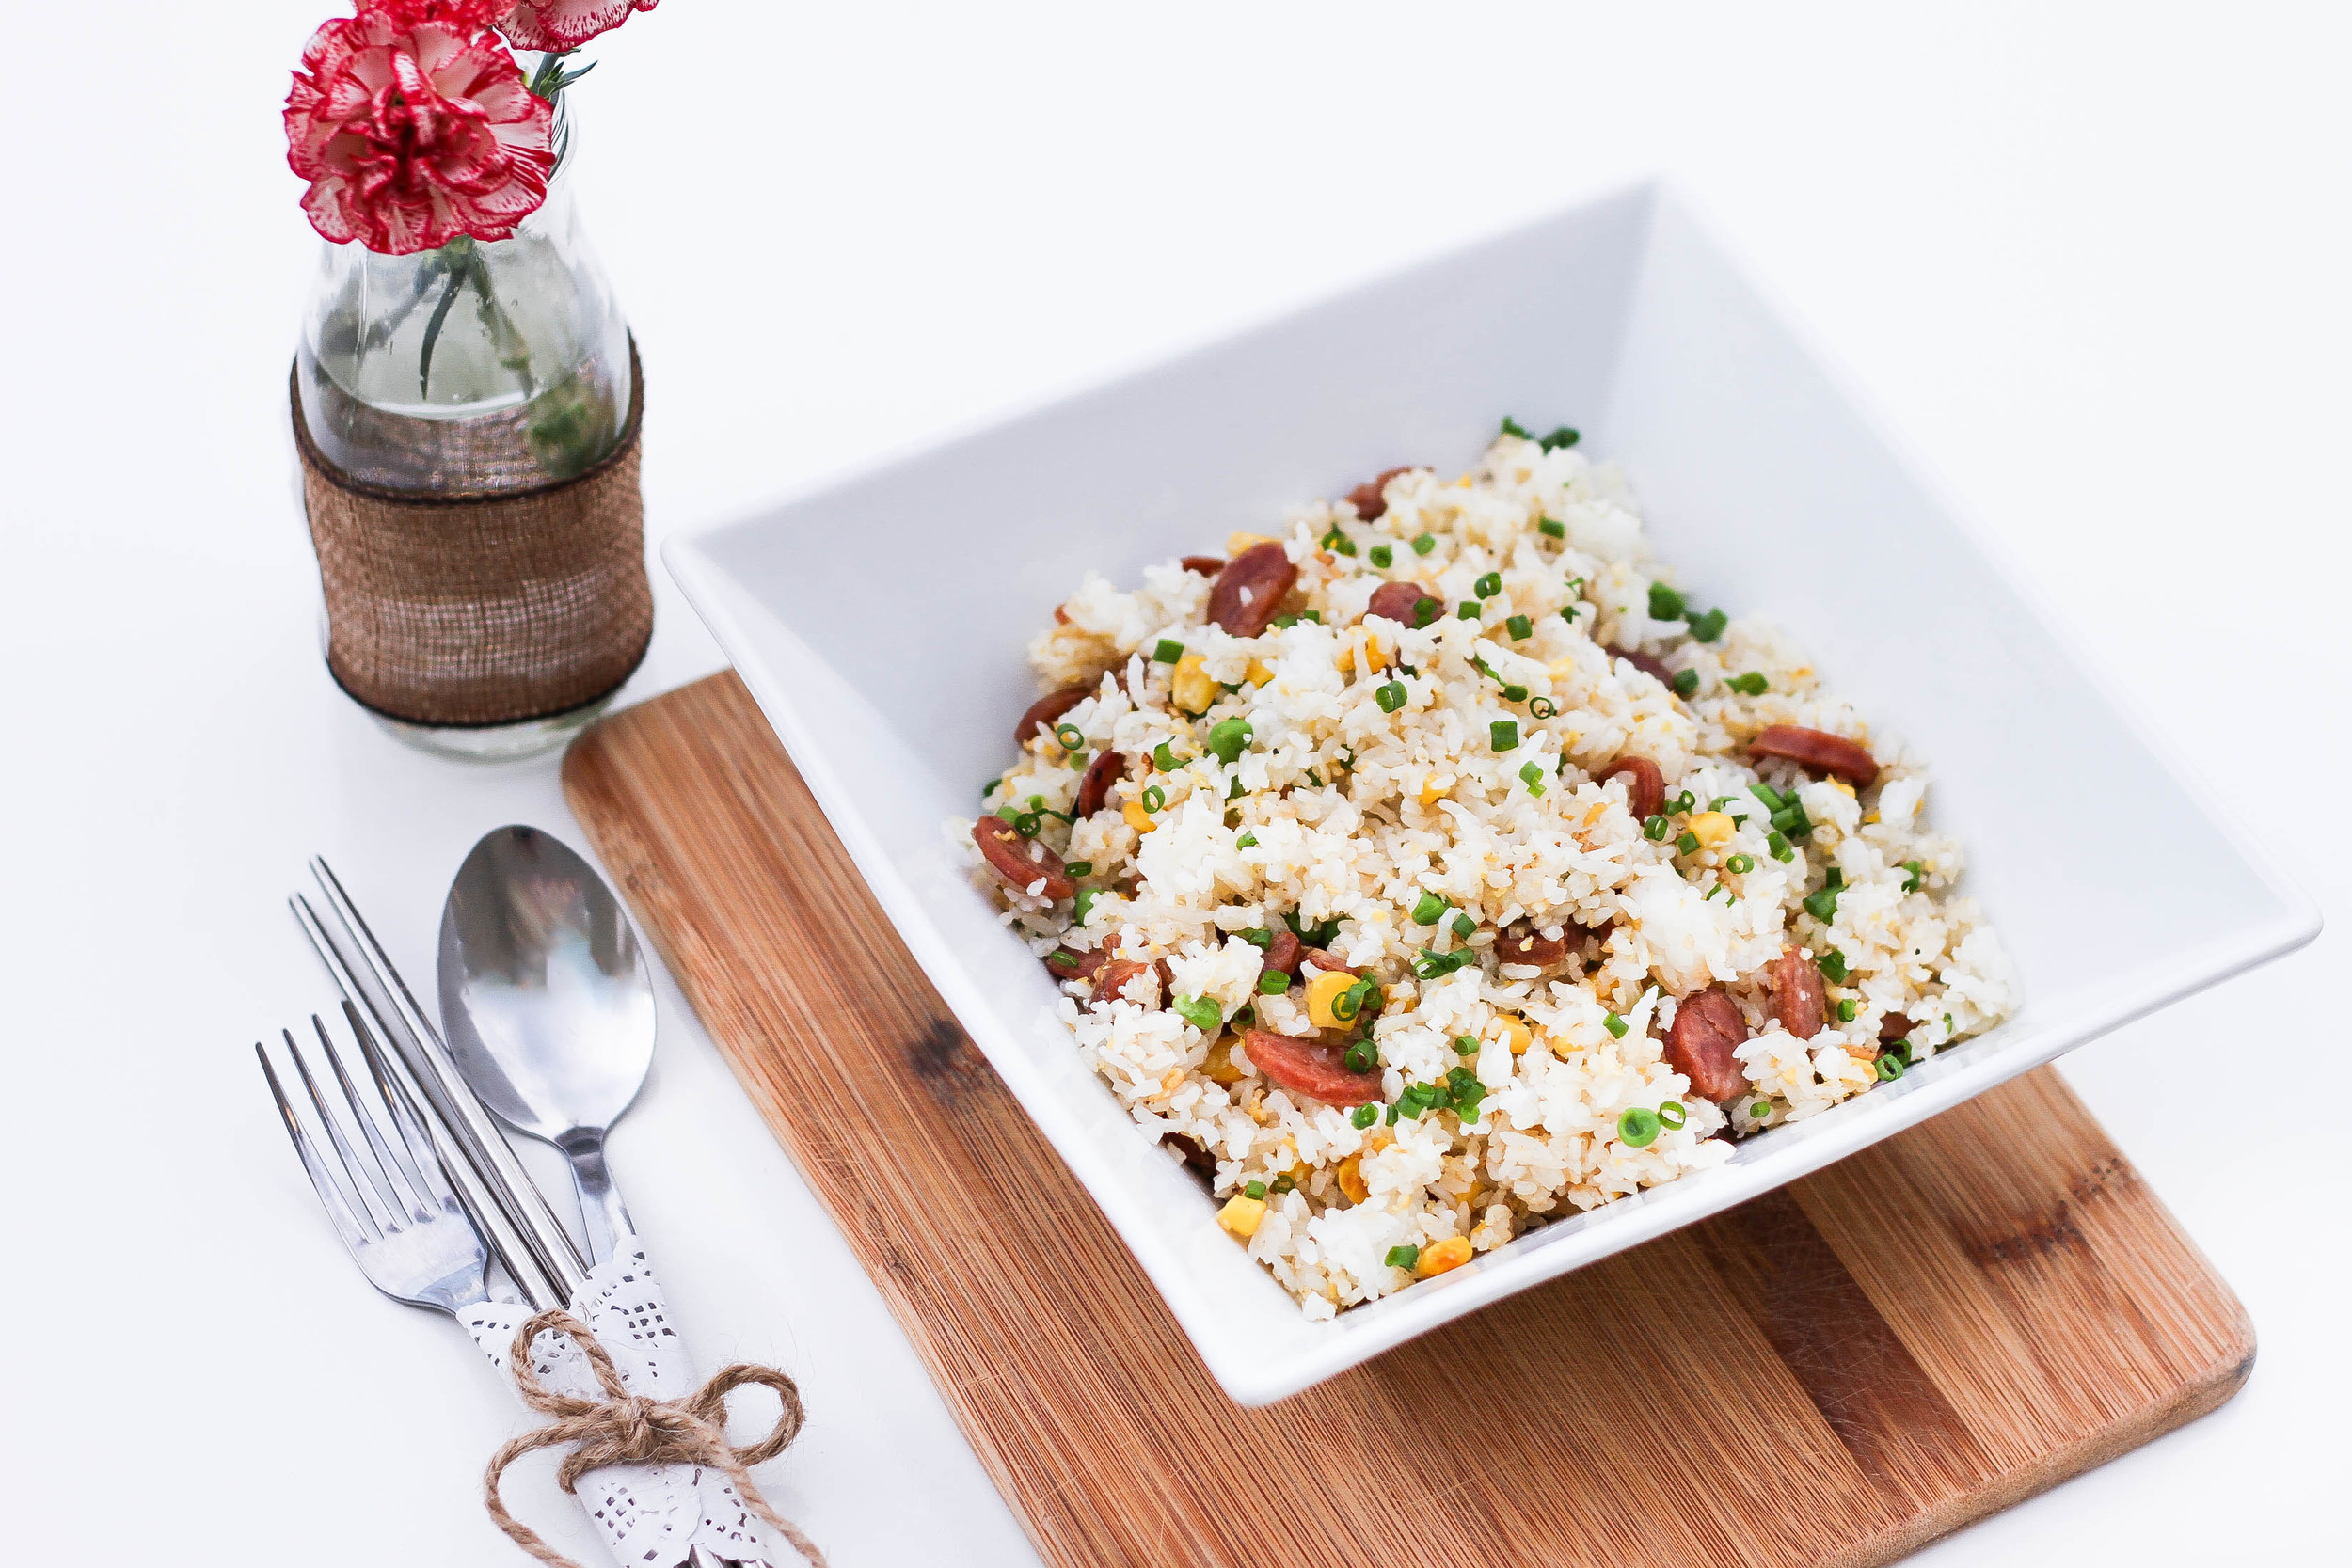 Fluffy Asian-style fried rice